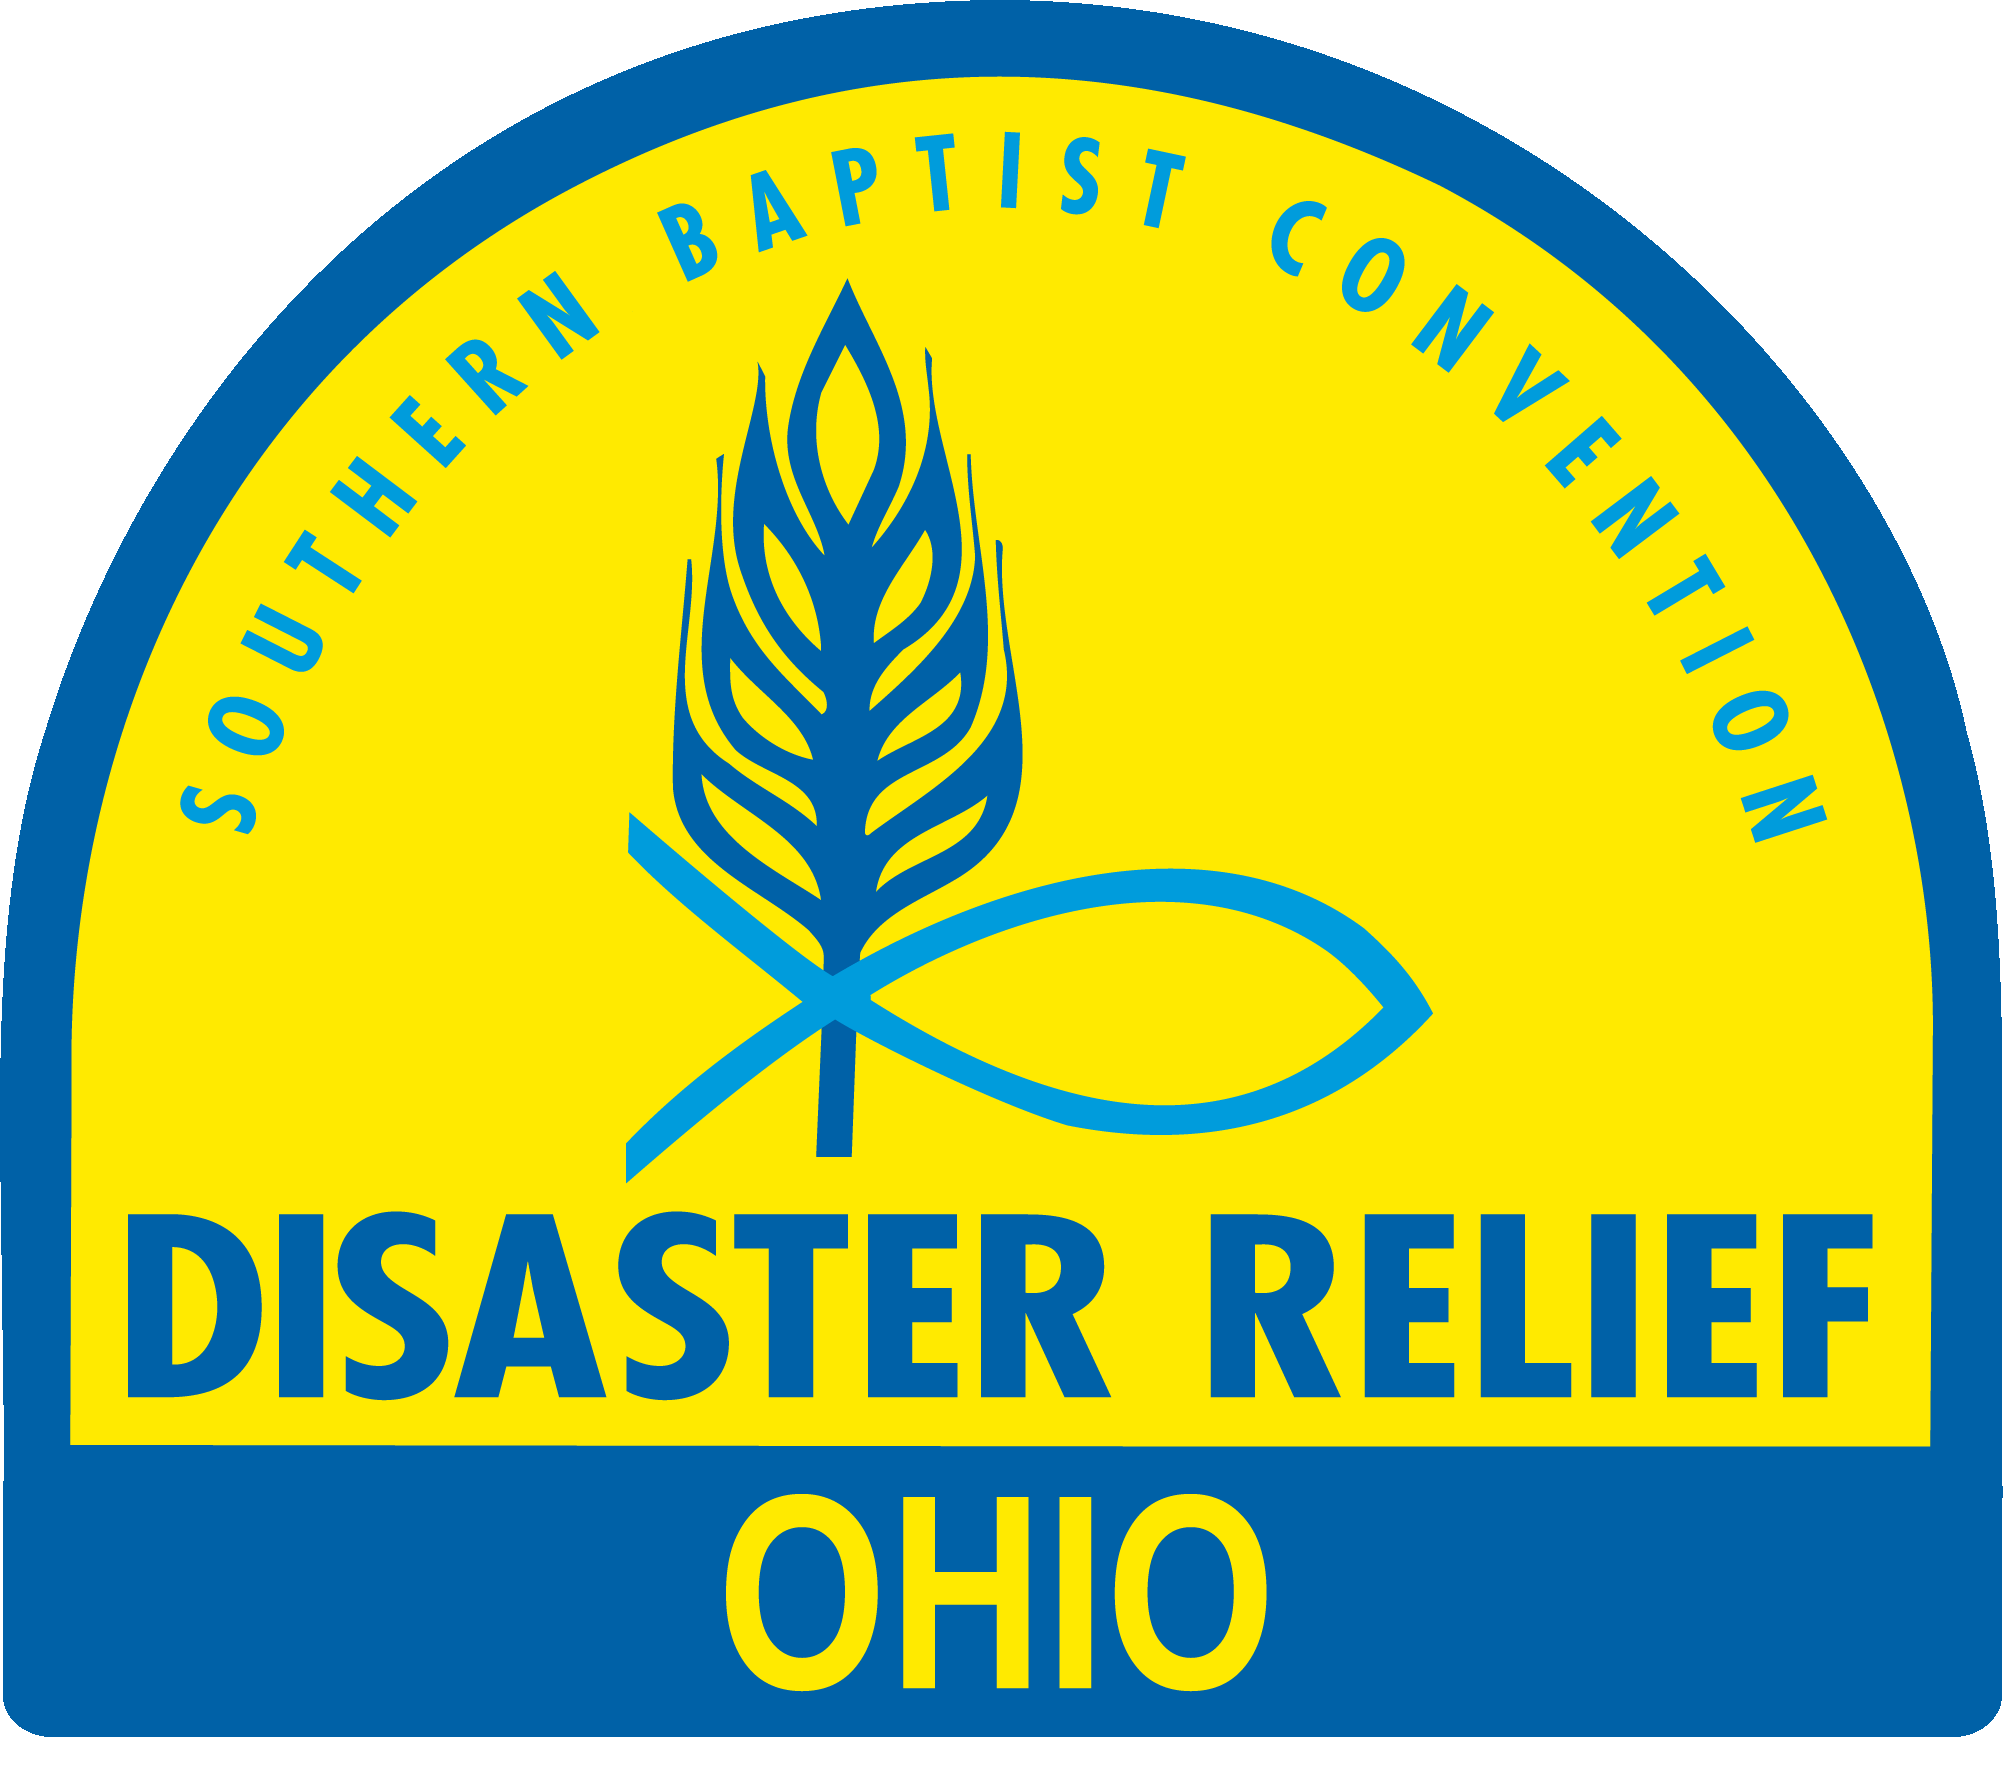 DISASTER-RELIEF-ohio_logo.png